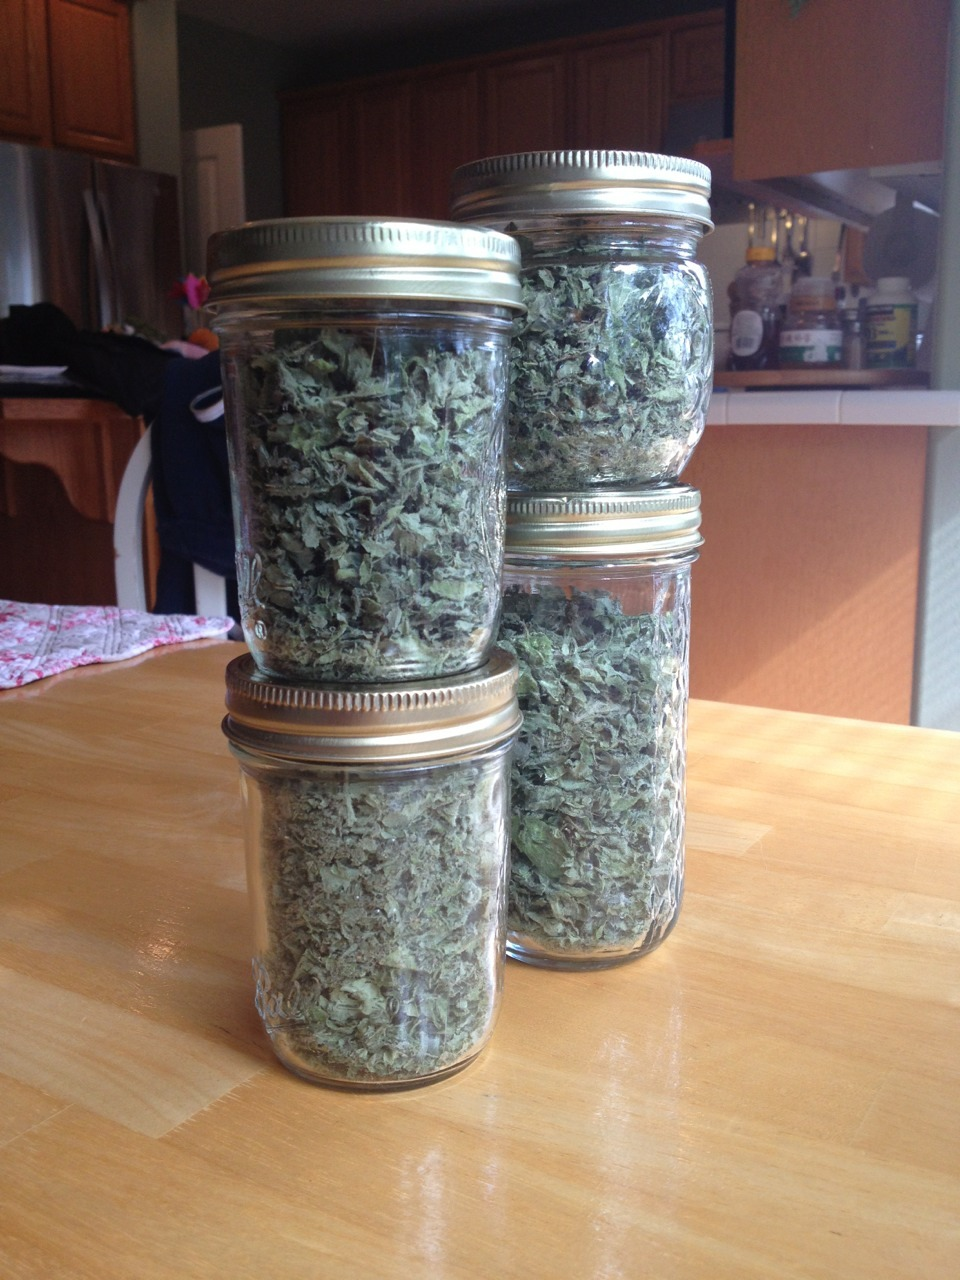 smart-gardener:  just-a-sprinkle-of-starlight:  Oreganooooo!! 🌿🌿😄 After drying it for a few days, I shucked it, jarred it, and am now planning something to use it in. Home-dried herbs are the best 😊😊  Oh fantastic! I'd love to know what you cook it up in! I love oregano in pretty much anything — soups, beans, pasta, sauces…